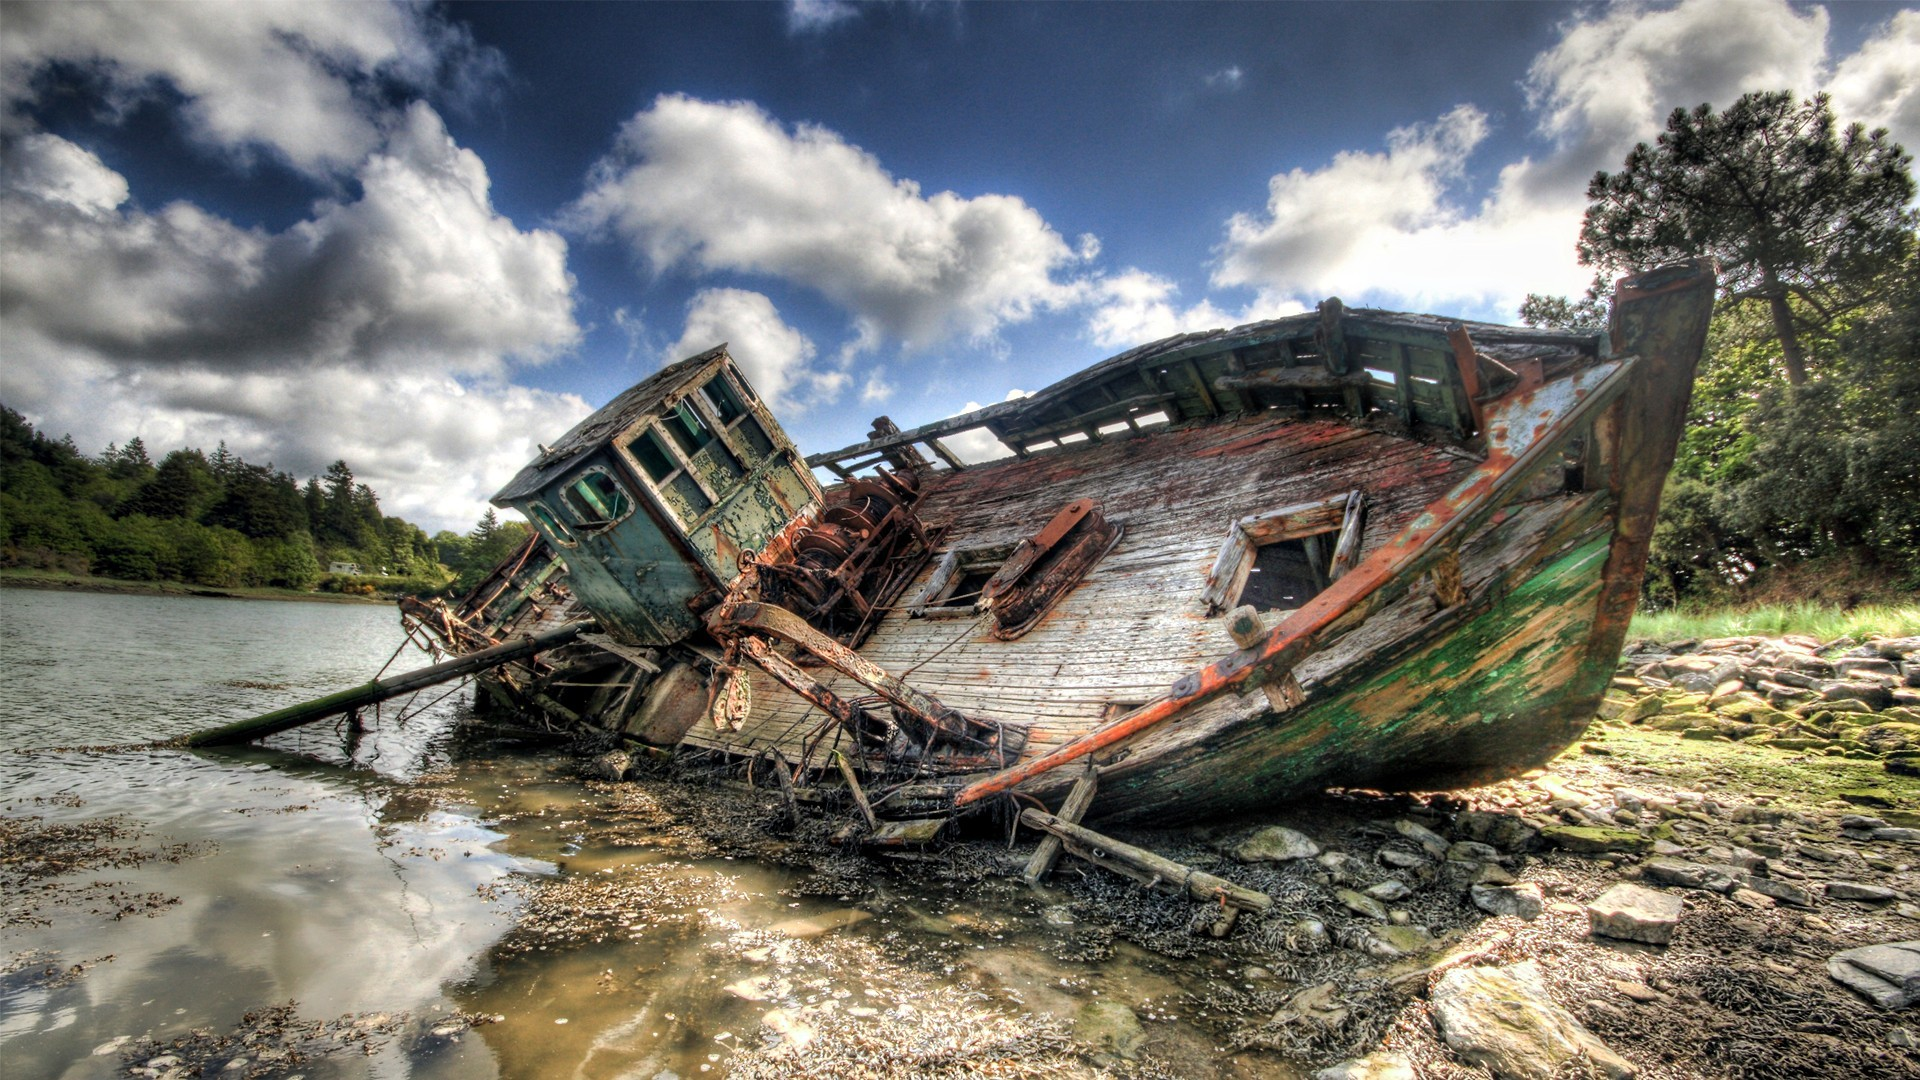 HDR photography boats landscapes sea wrecks